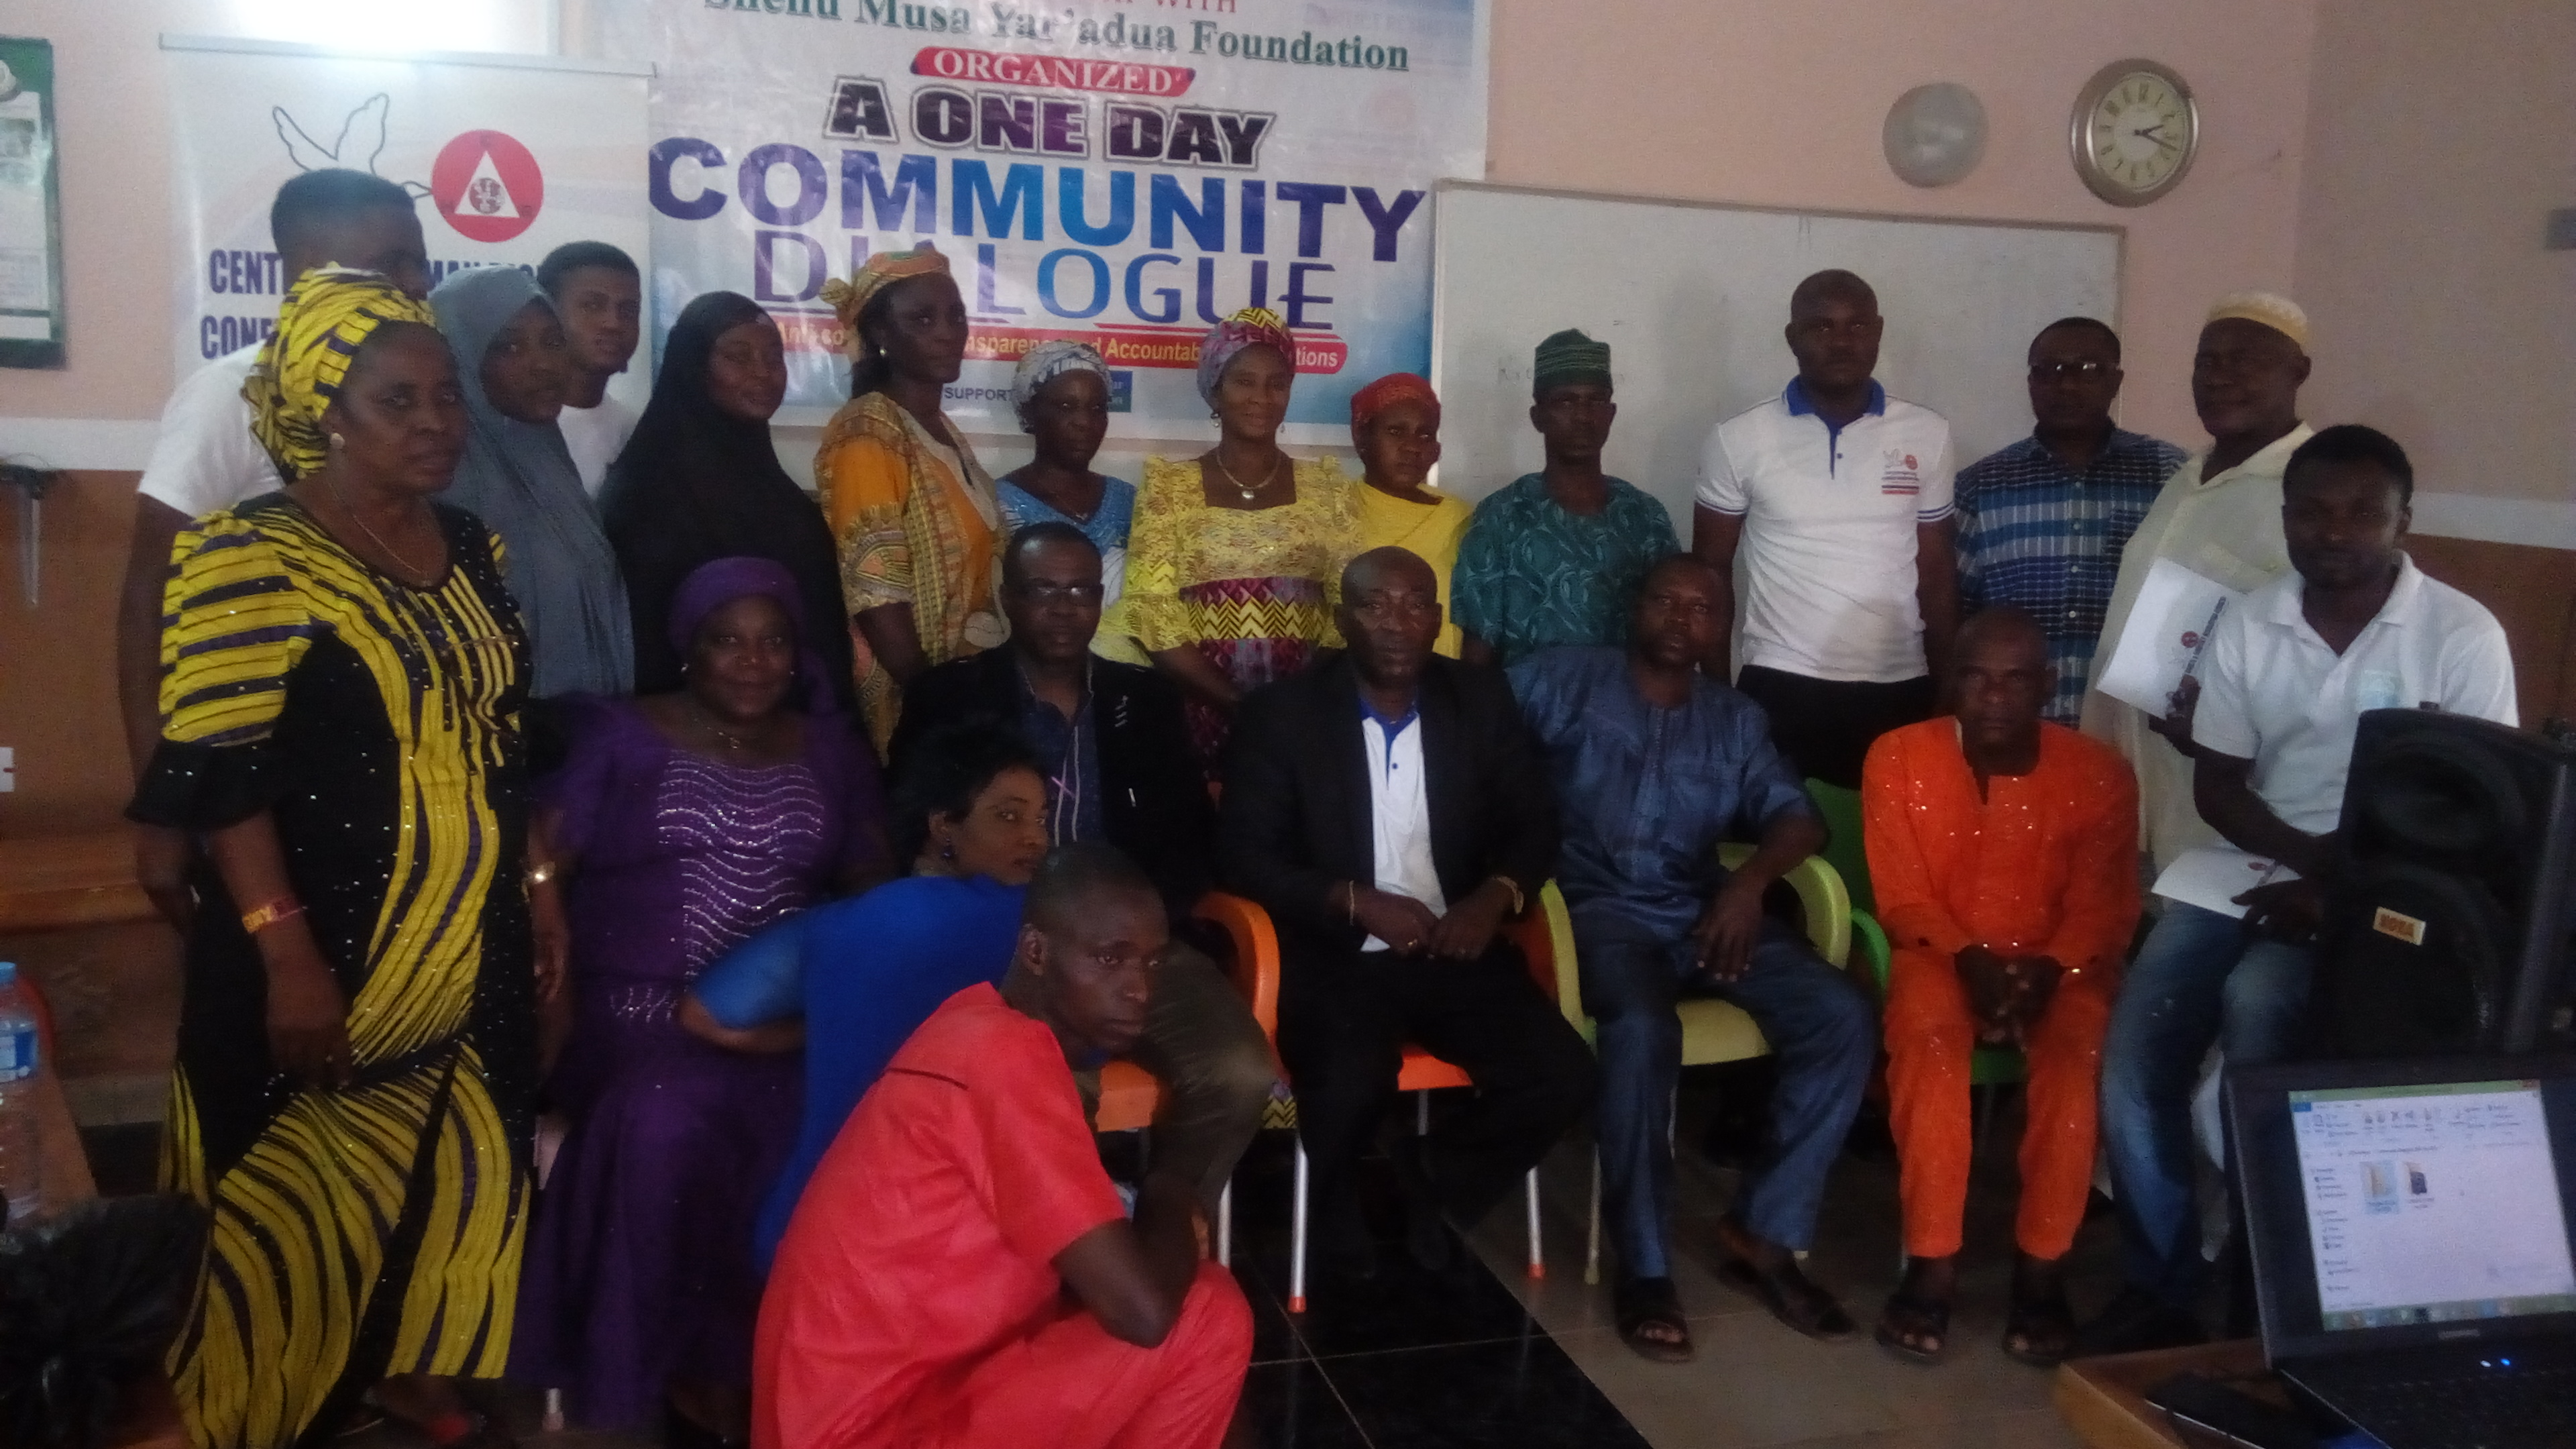 A One Day Community Dialogue @Anyigba